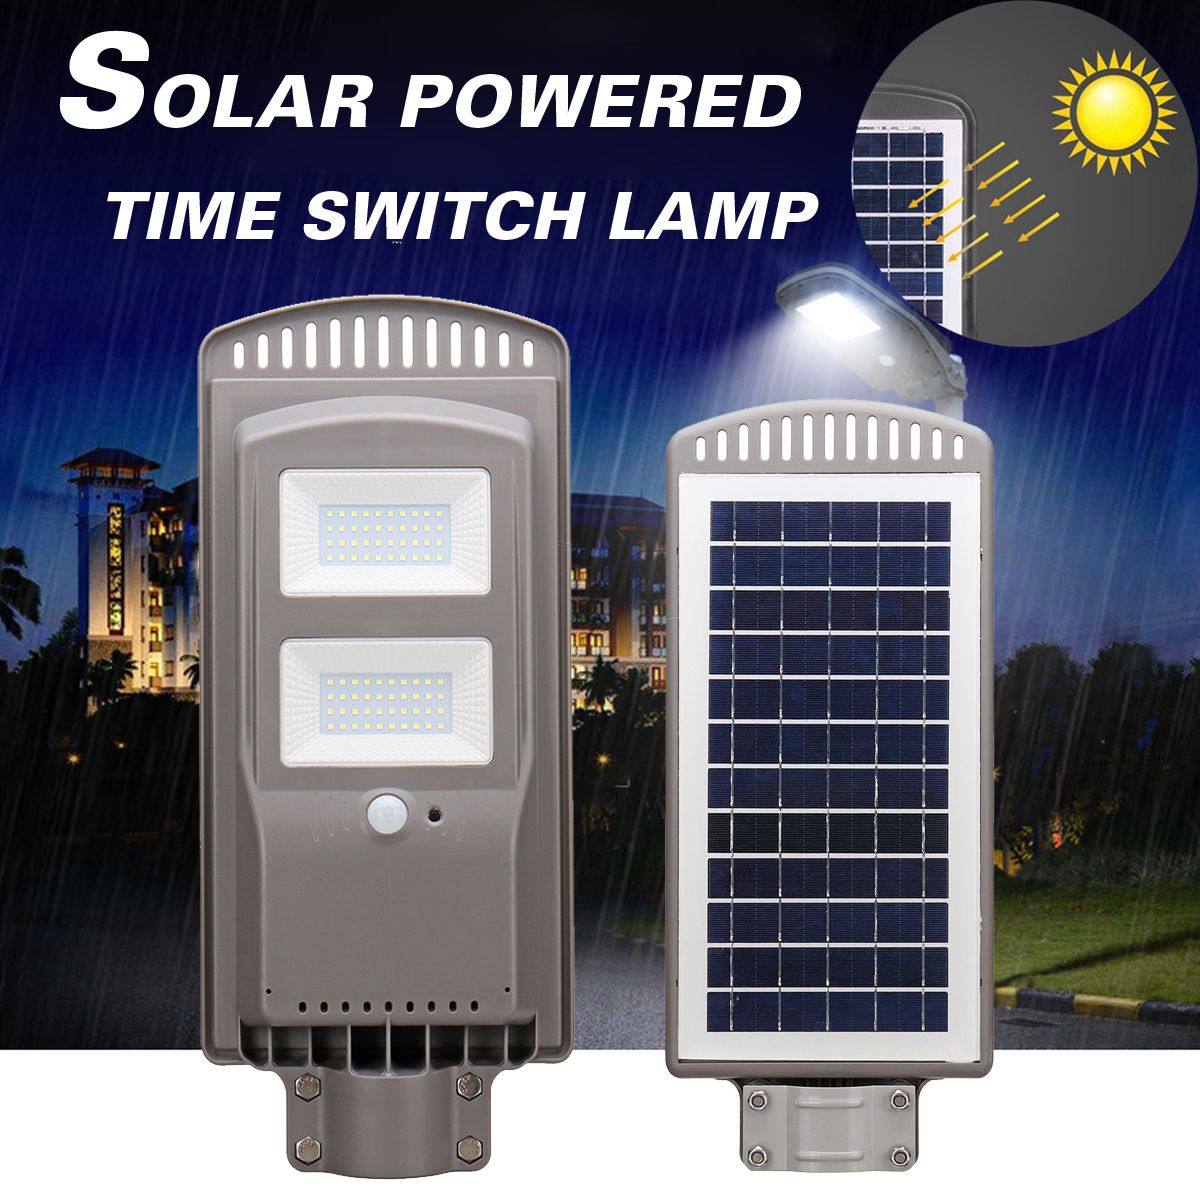 цена на 40W Solar Powered Panel LED Solar Street Light All-in-1 Time Switch Waterproof IP67 Wall Path Lighting Lamp for Outdoor Garden